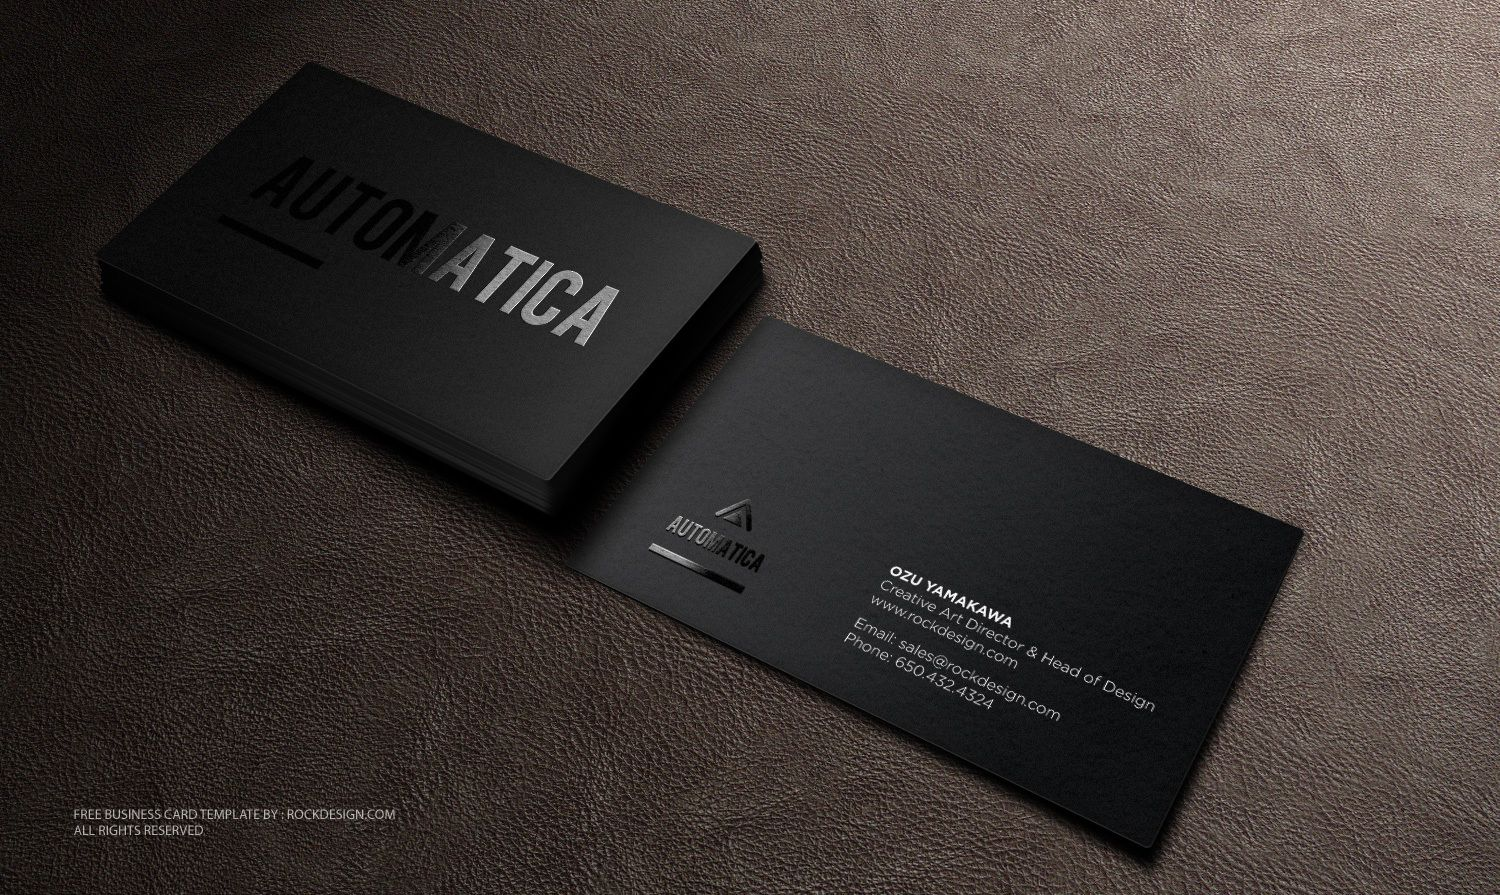 Black business card template download free design templates black business card template download free design templates fbccfo Choice Image